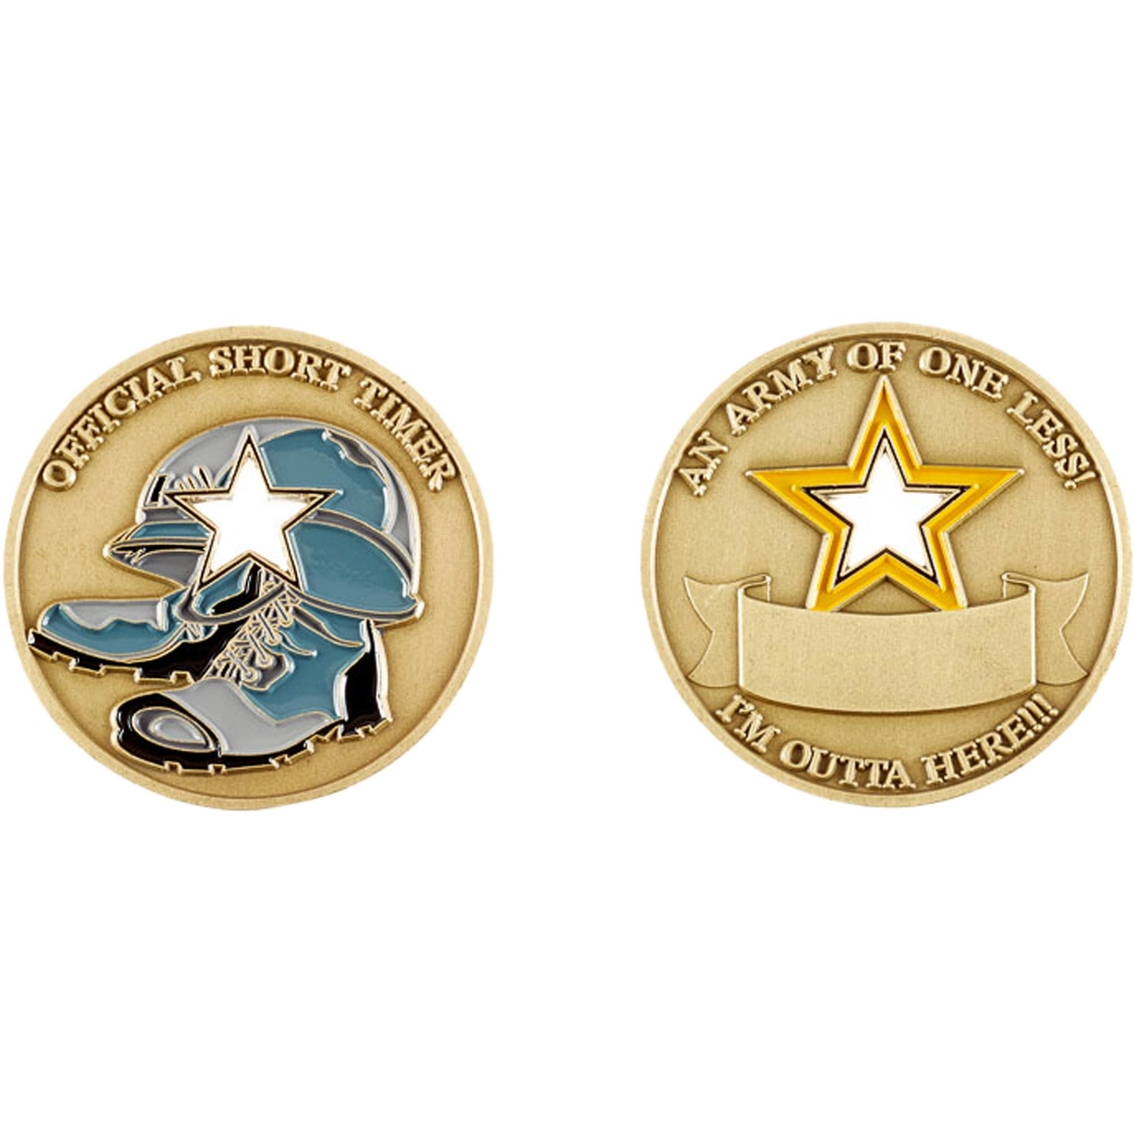 Challenge Coin An Army Of One Less! Coin | Coins & Cases | Gifts